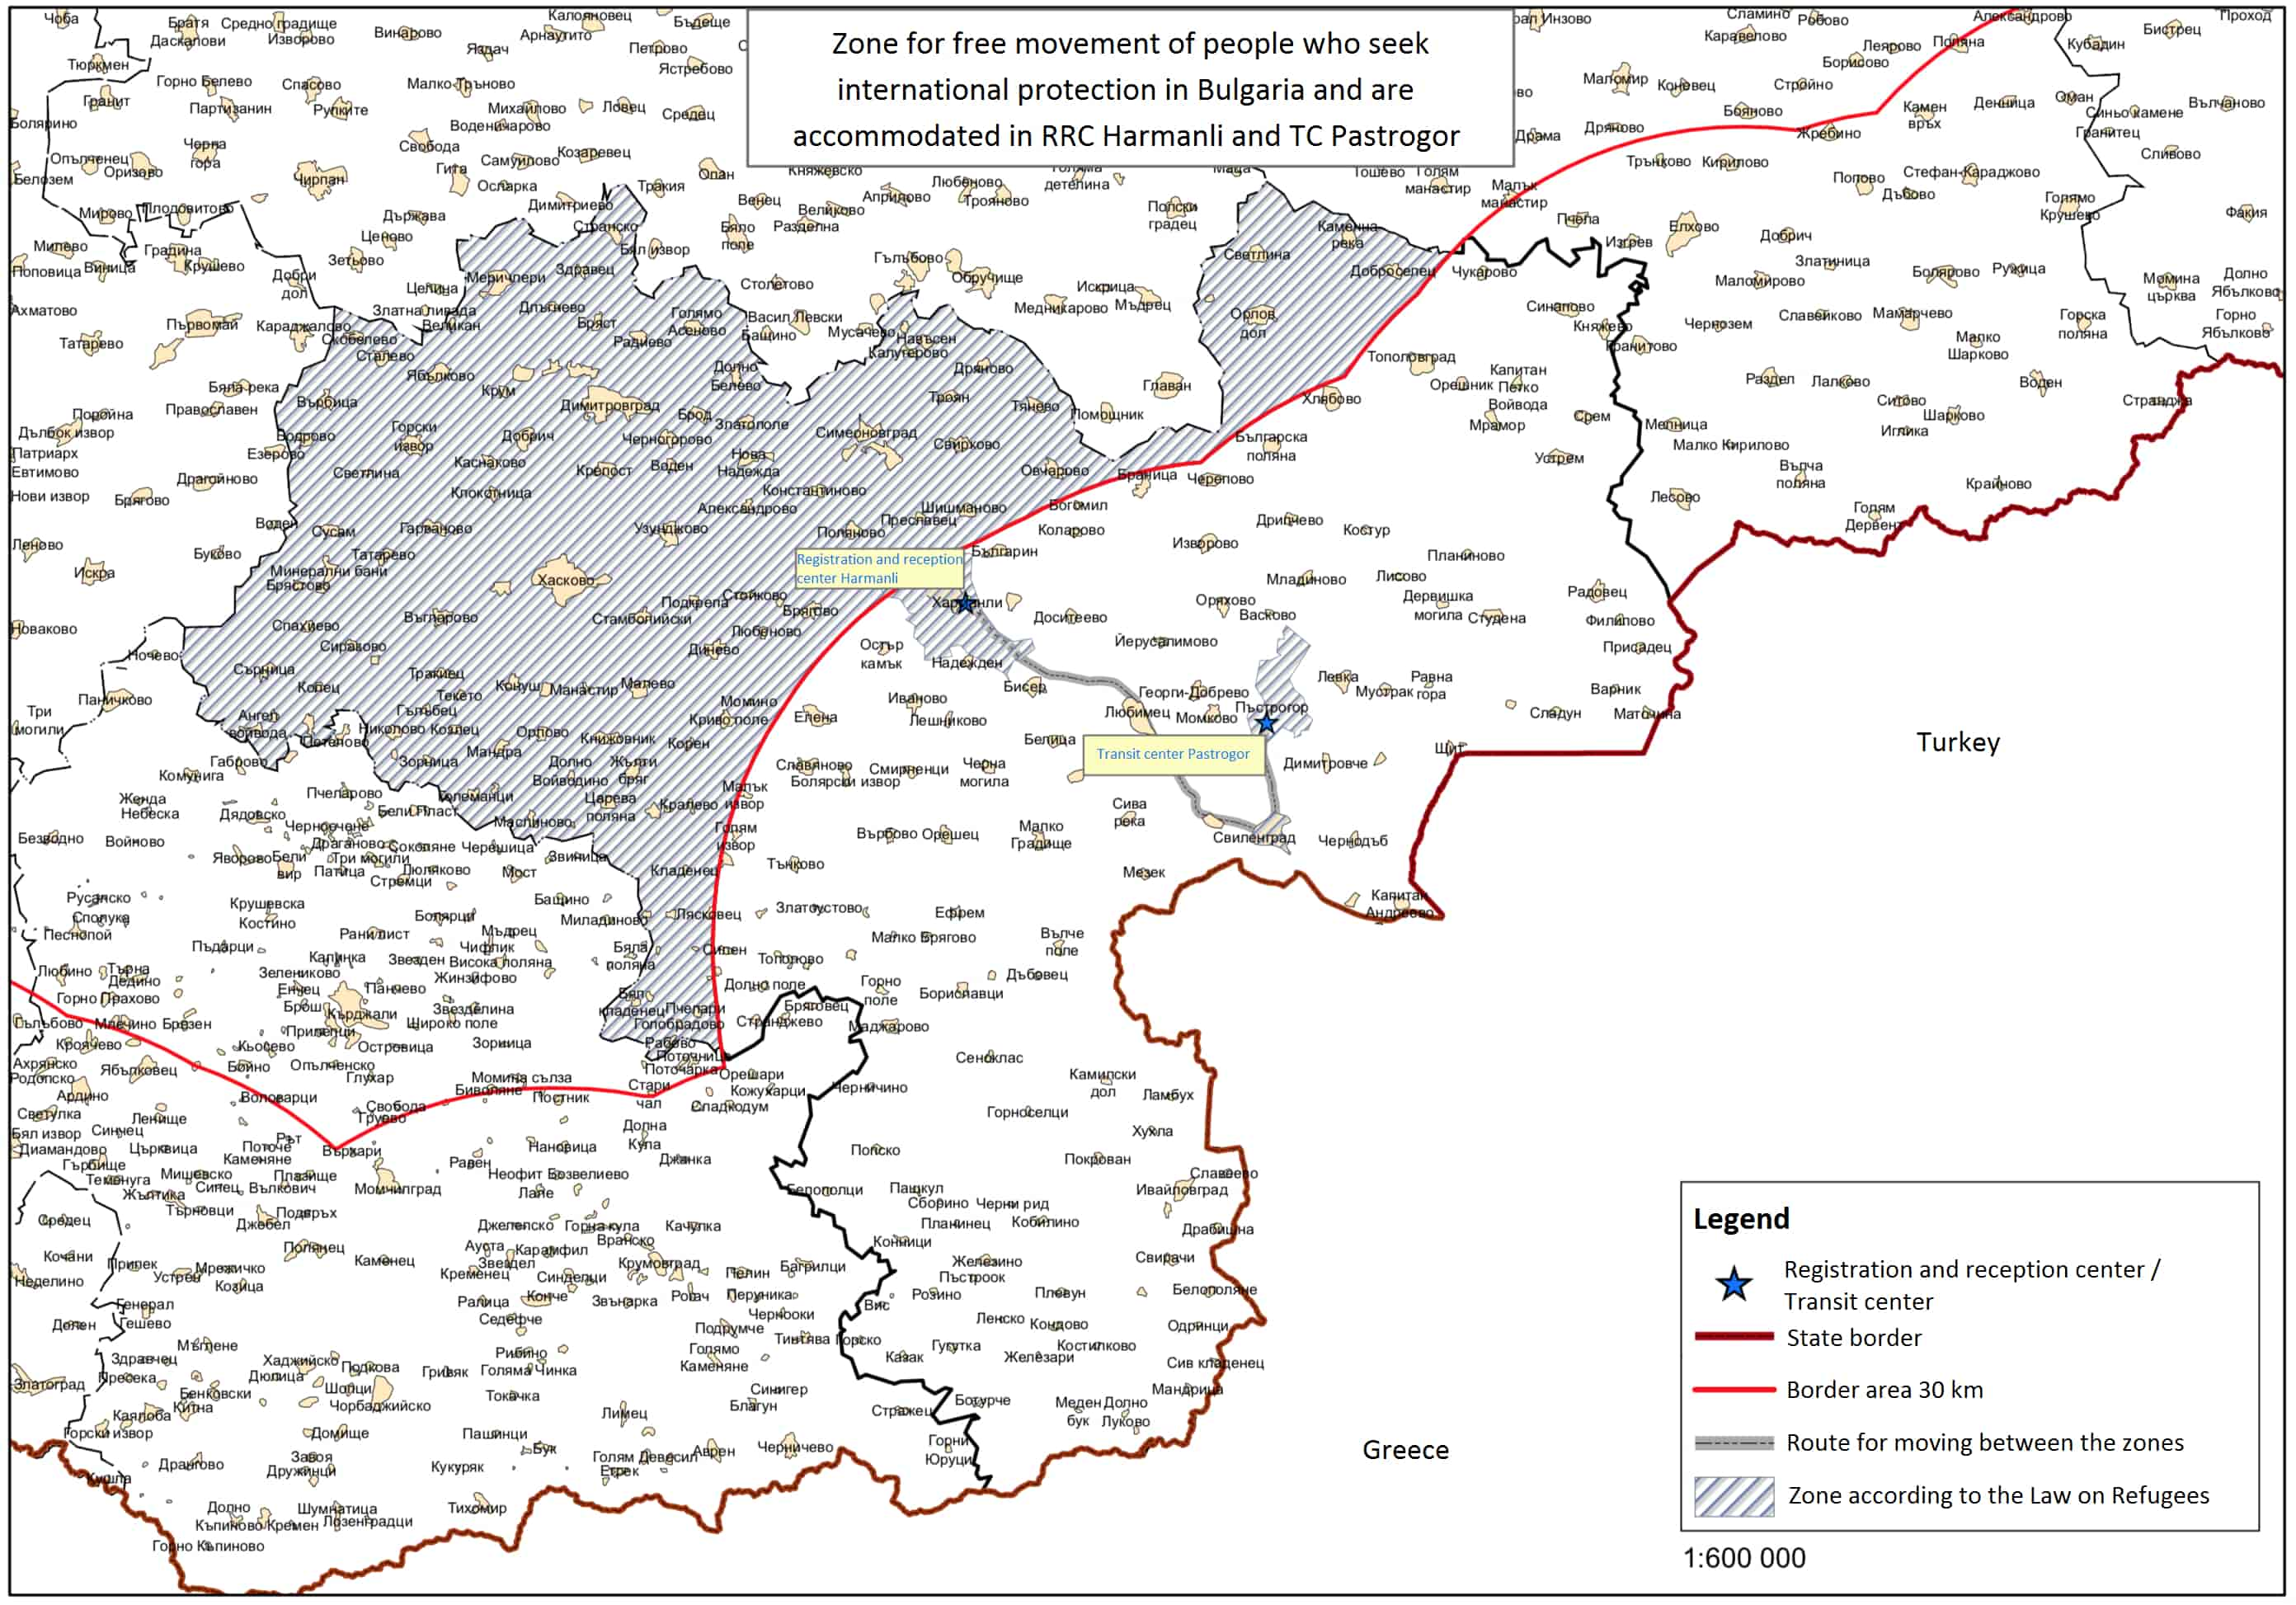 Zones of free and restricted movement for asylum-seekers accommodated in Harmanli and Pastrogor